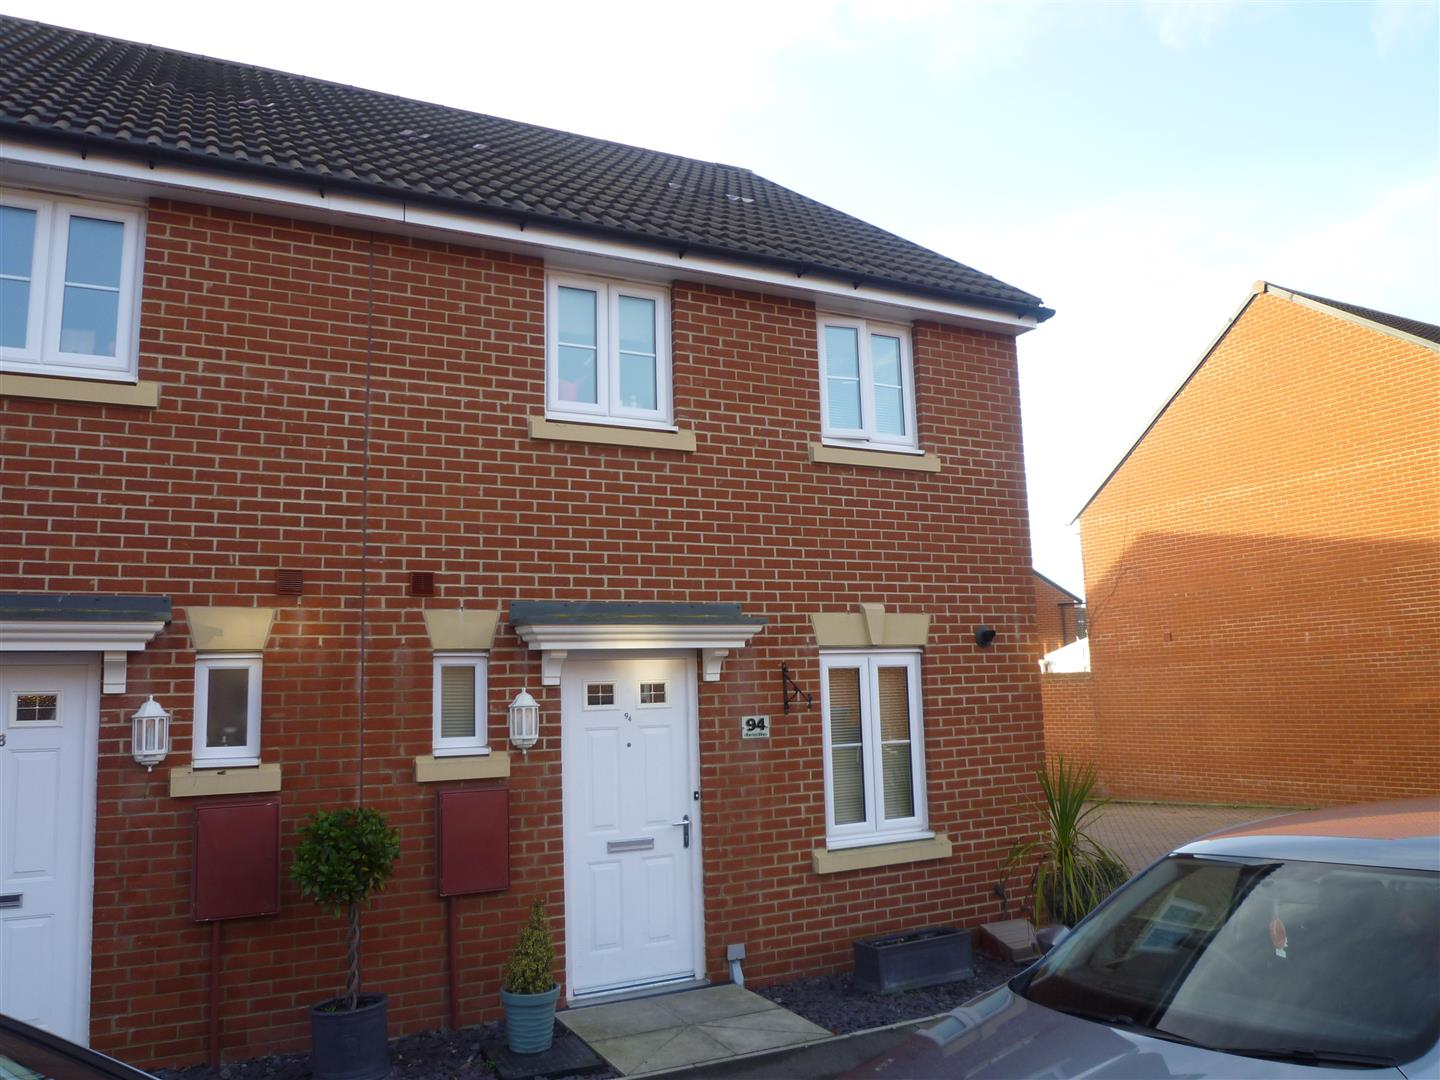 3 Bedrooms Semi Detached House for sale in Hilperton, Trowbridge